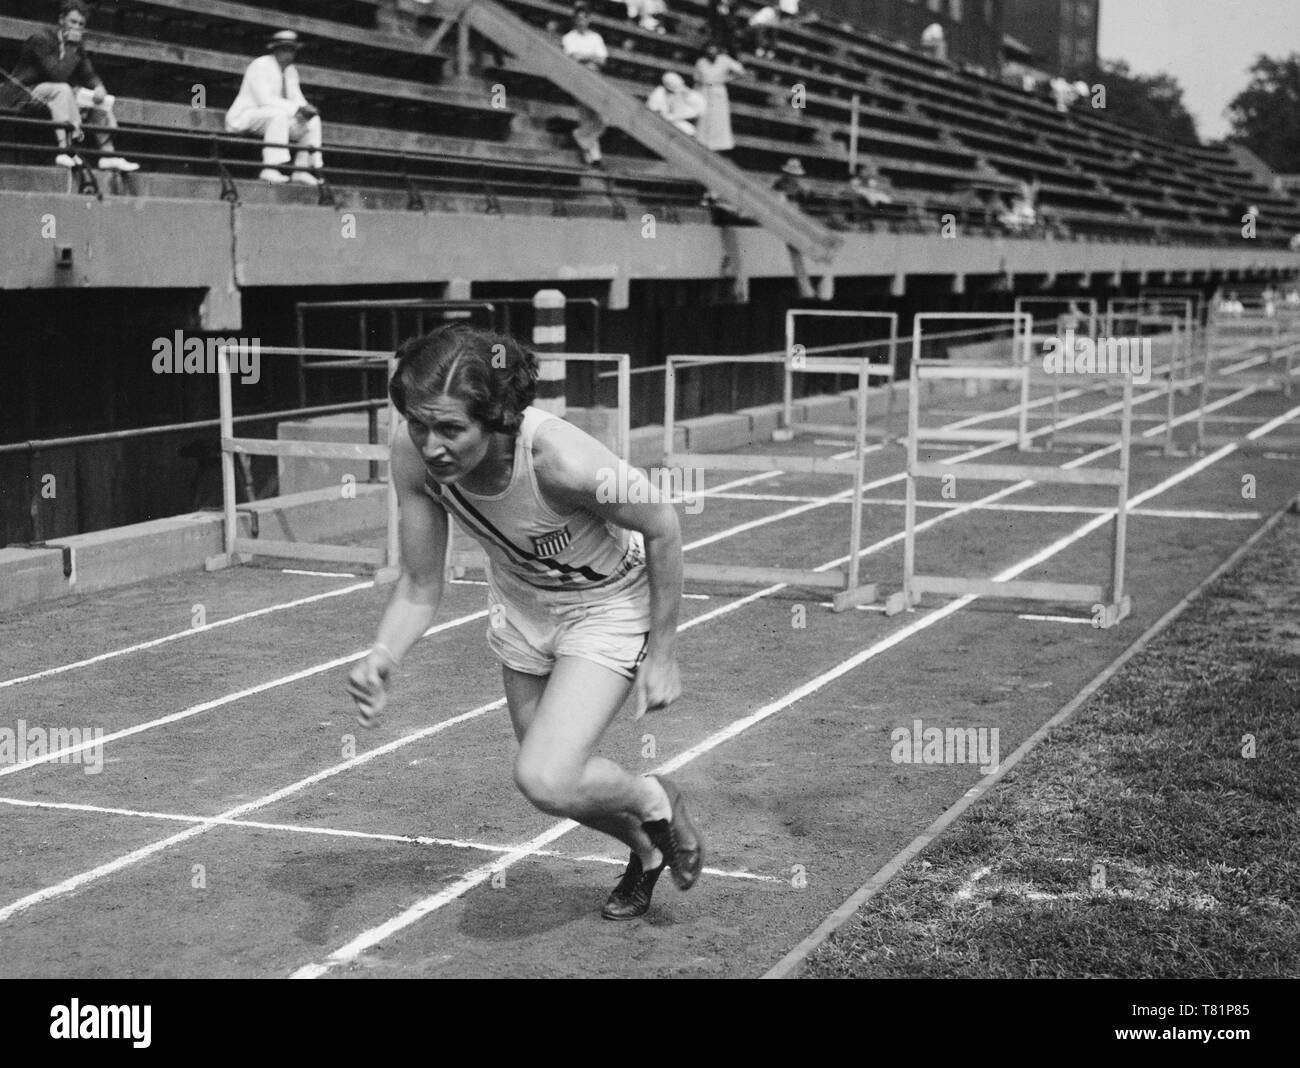 Helen Stephens, American Athlete - Stock Image